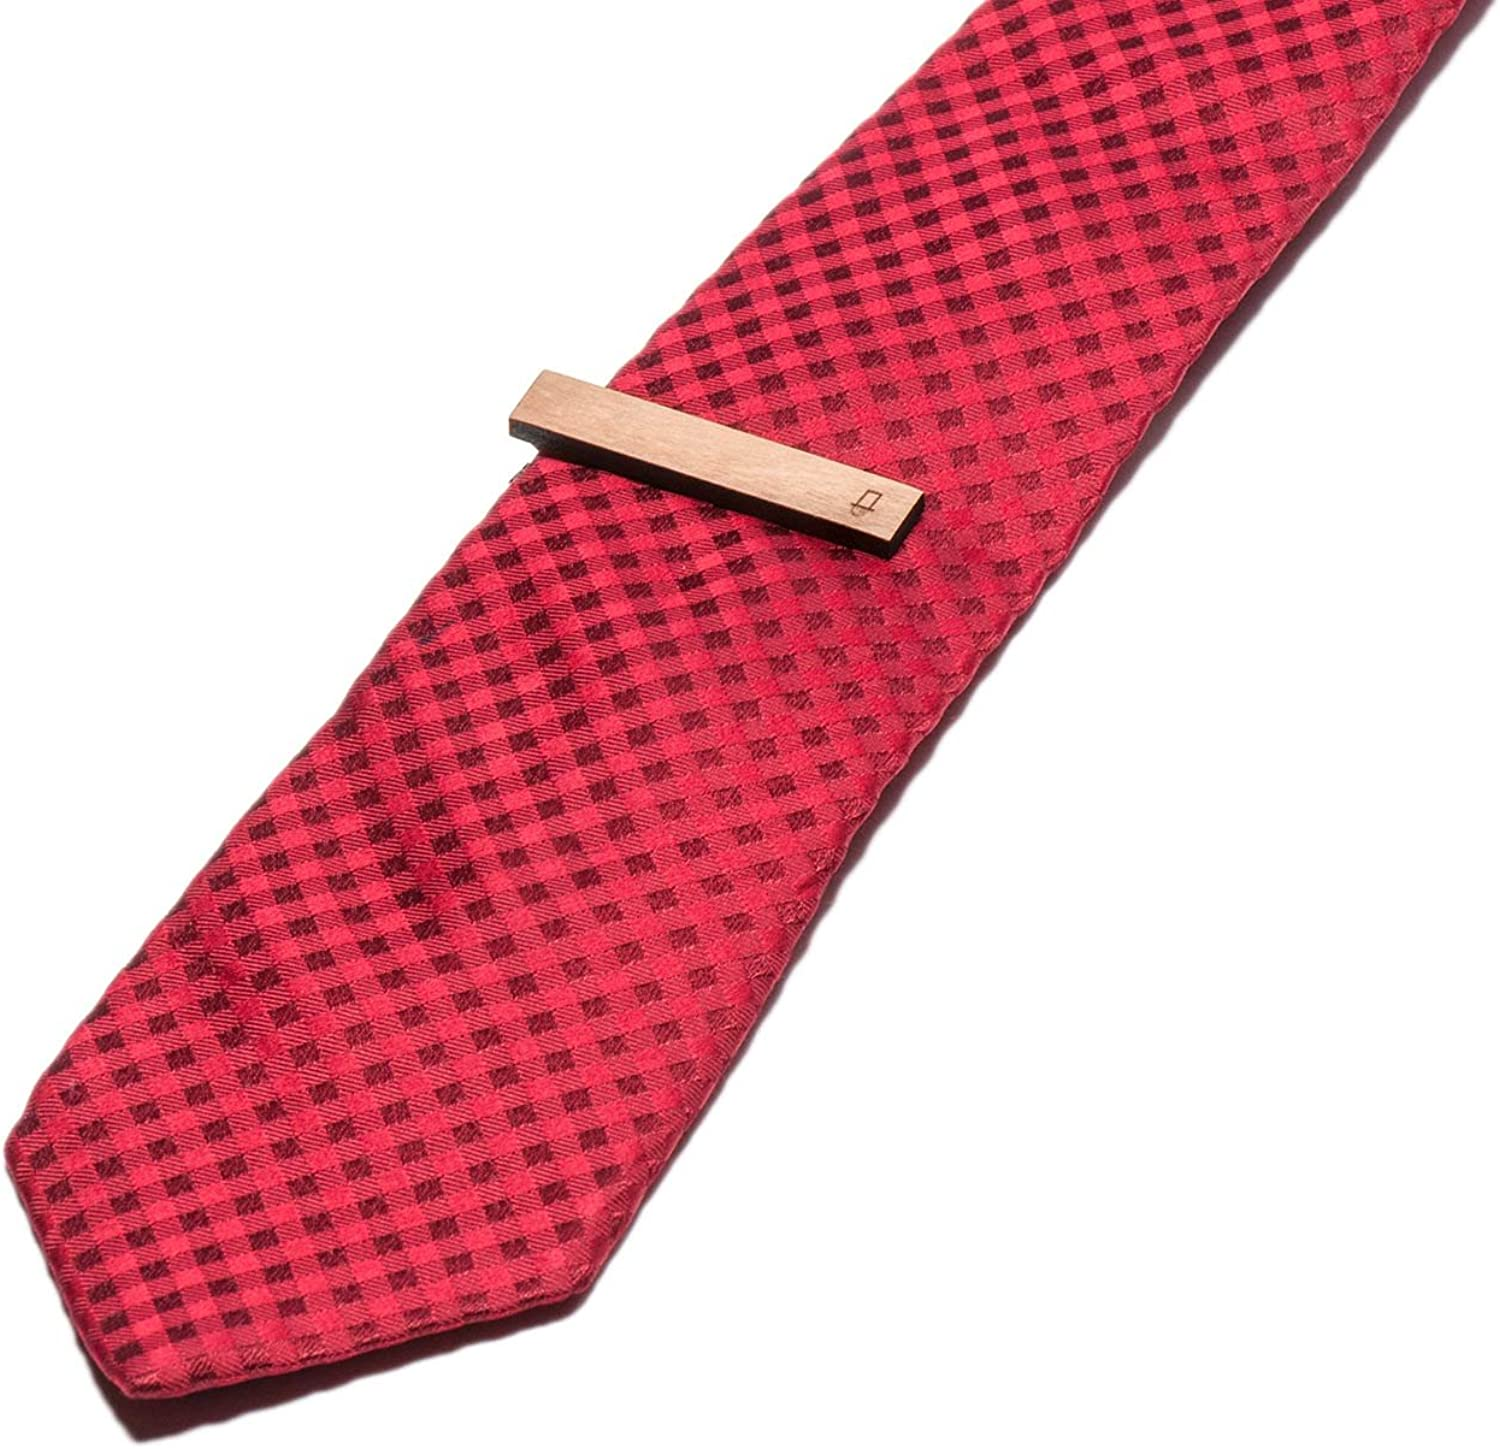 Wooden Accessories Company Wooden Tie Clips with Laser Engraved Baron Design Cherry Wood Tie Bar Engraved in The USA